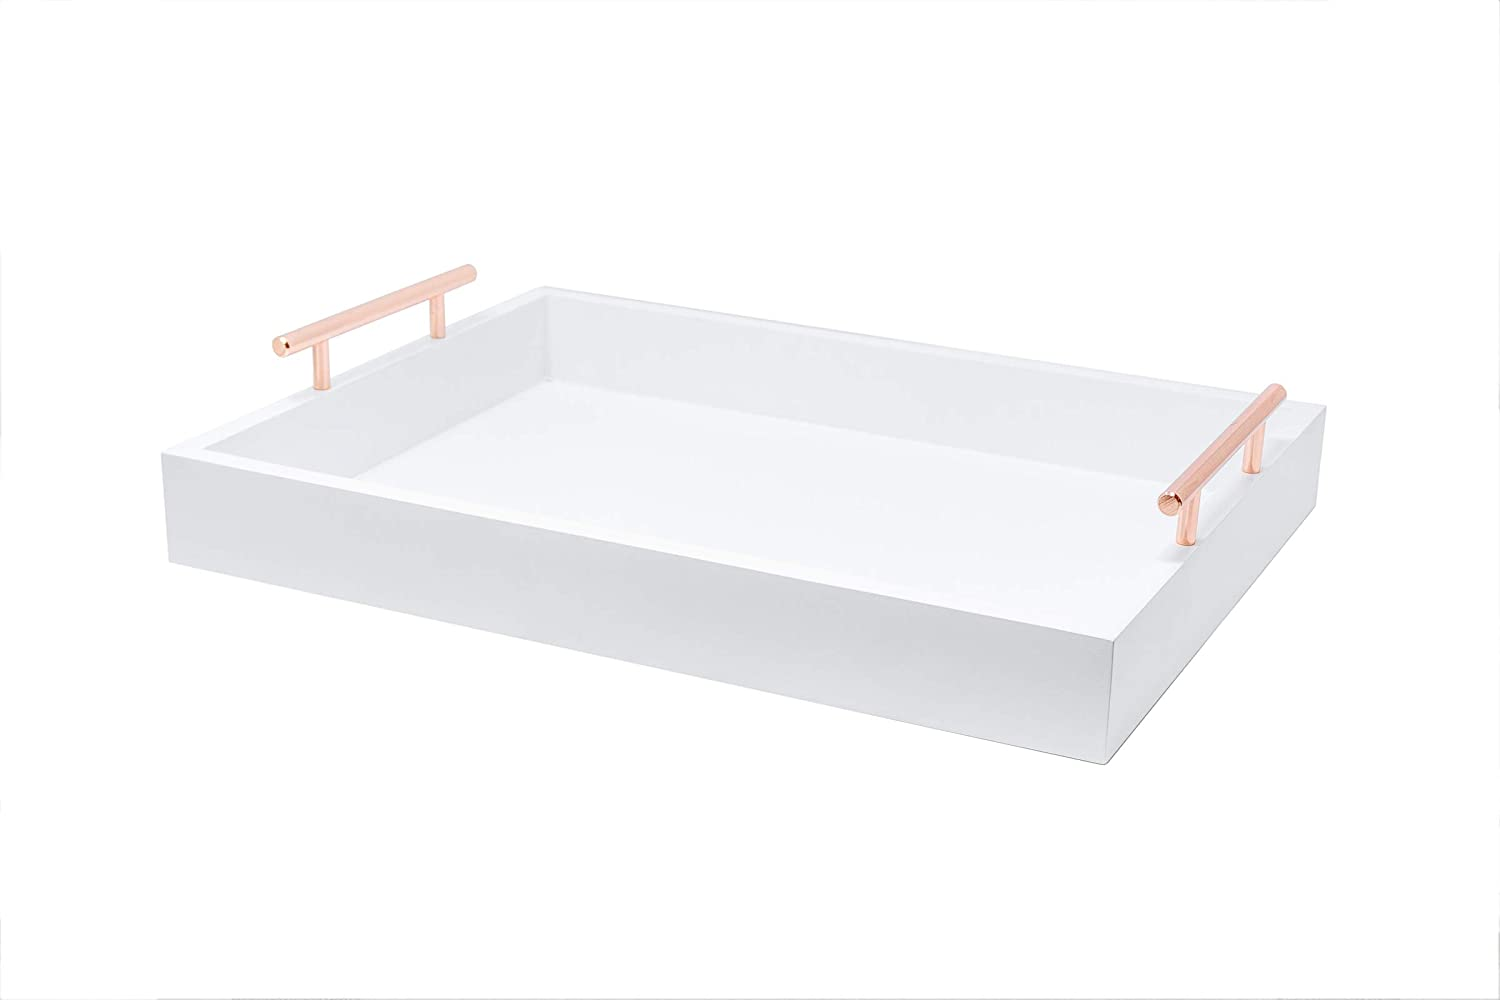 Home Decor White Tray with Rose Gold Handles for Coffee Table Or Ottoman Serving Tray